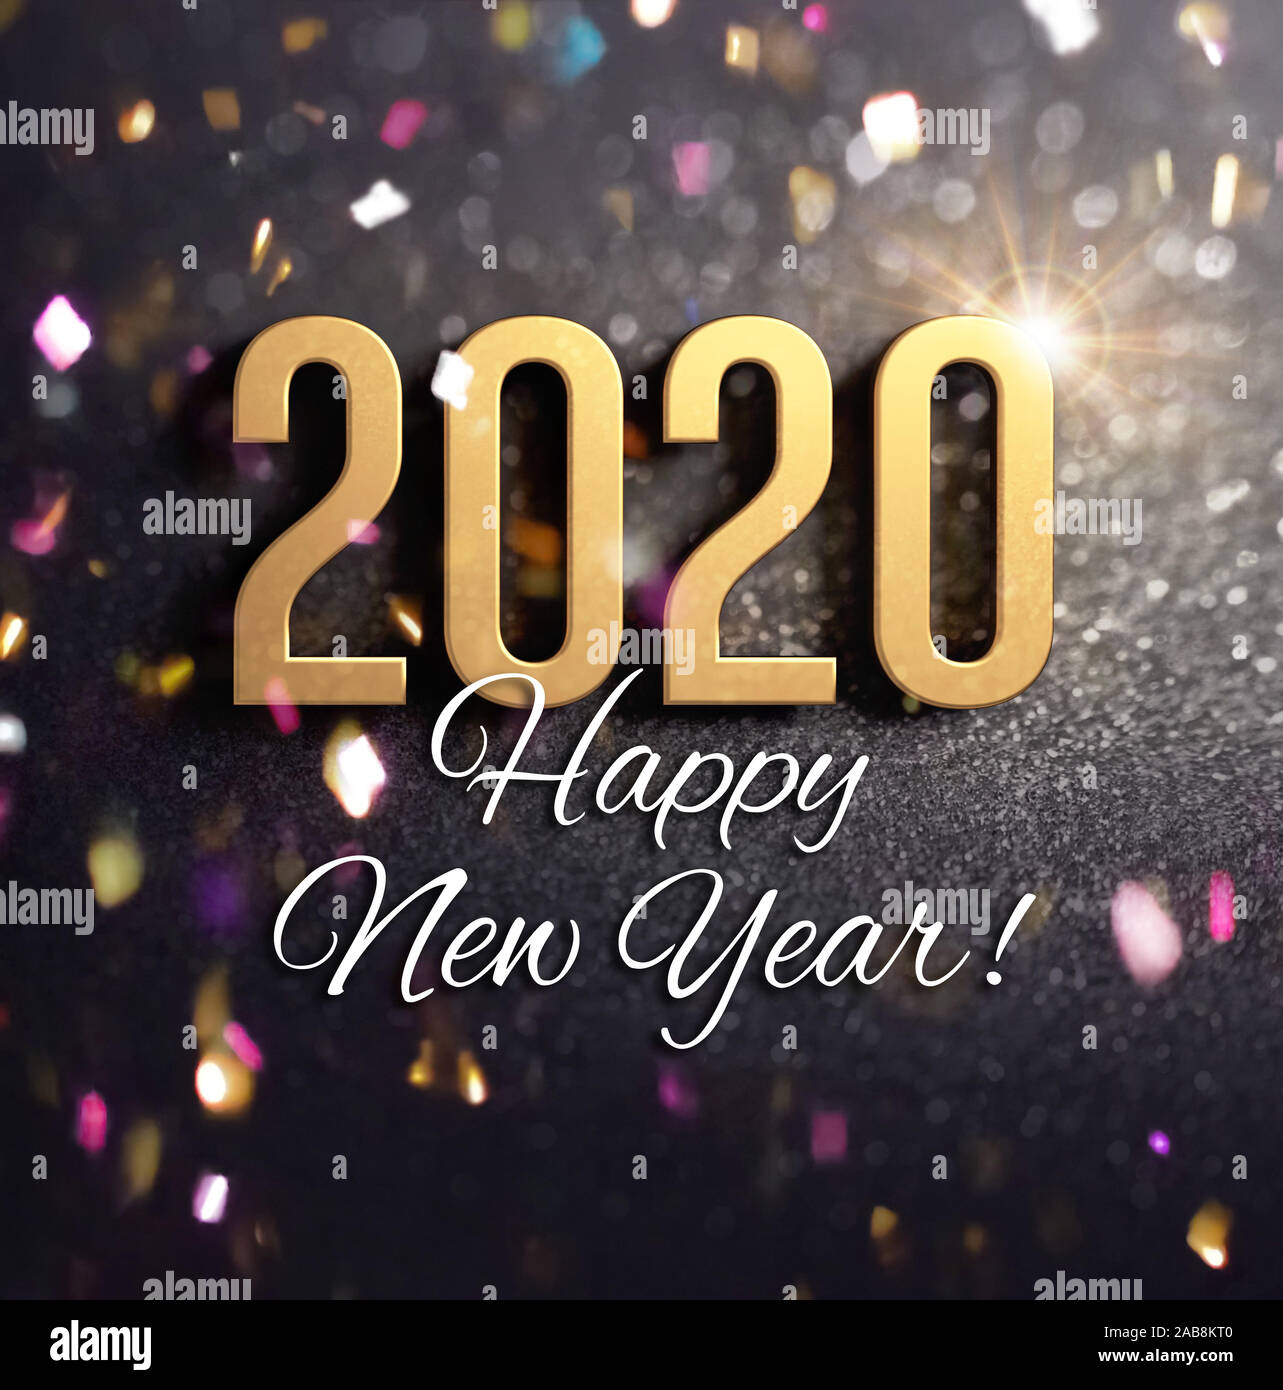 happy new year greetings and 2020 date number colored in gold on a festive black background with glitters and confetti 3d illustration stock photo alamy https www alamy com happy new year greetings and 2020 date number colored in gold on a festive black background with glitters and confetti 3d illustration image333949392 html